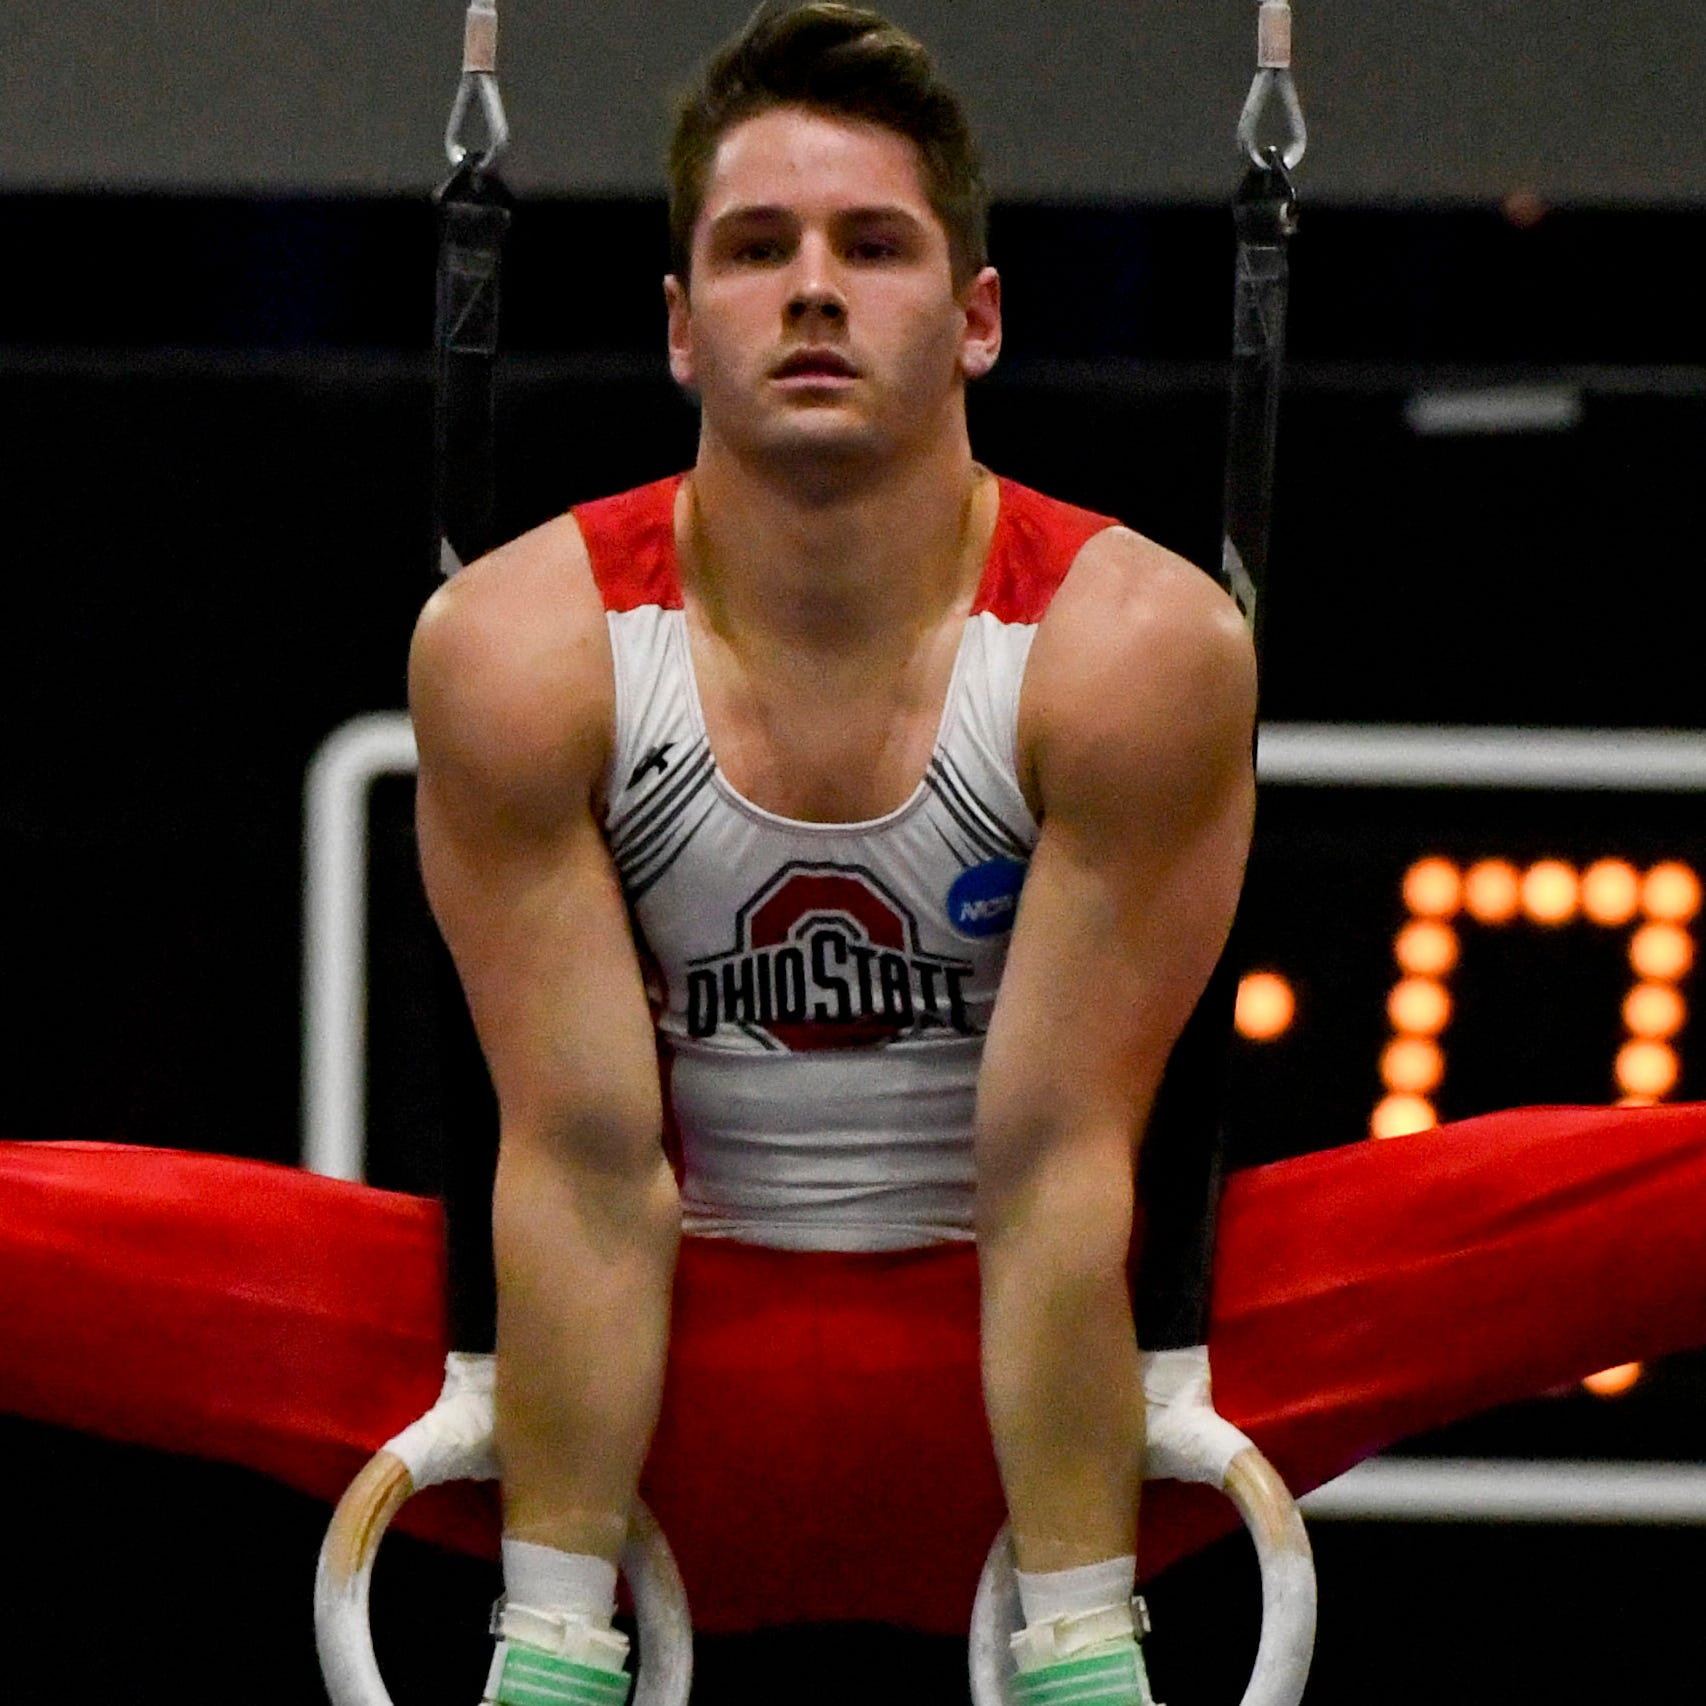 Apr 21, 2018; Chicago, IL, USA; Ohio State Buckeyes gymnast Alec Yoder competes in the rings at the NCAA National Collegiate Gymnastics Championships at UIC Pavilion.  Mandatory Credit: Matt Marton-USA TODAY Sports